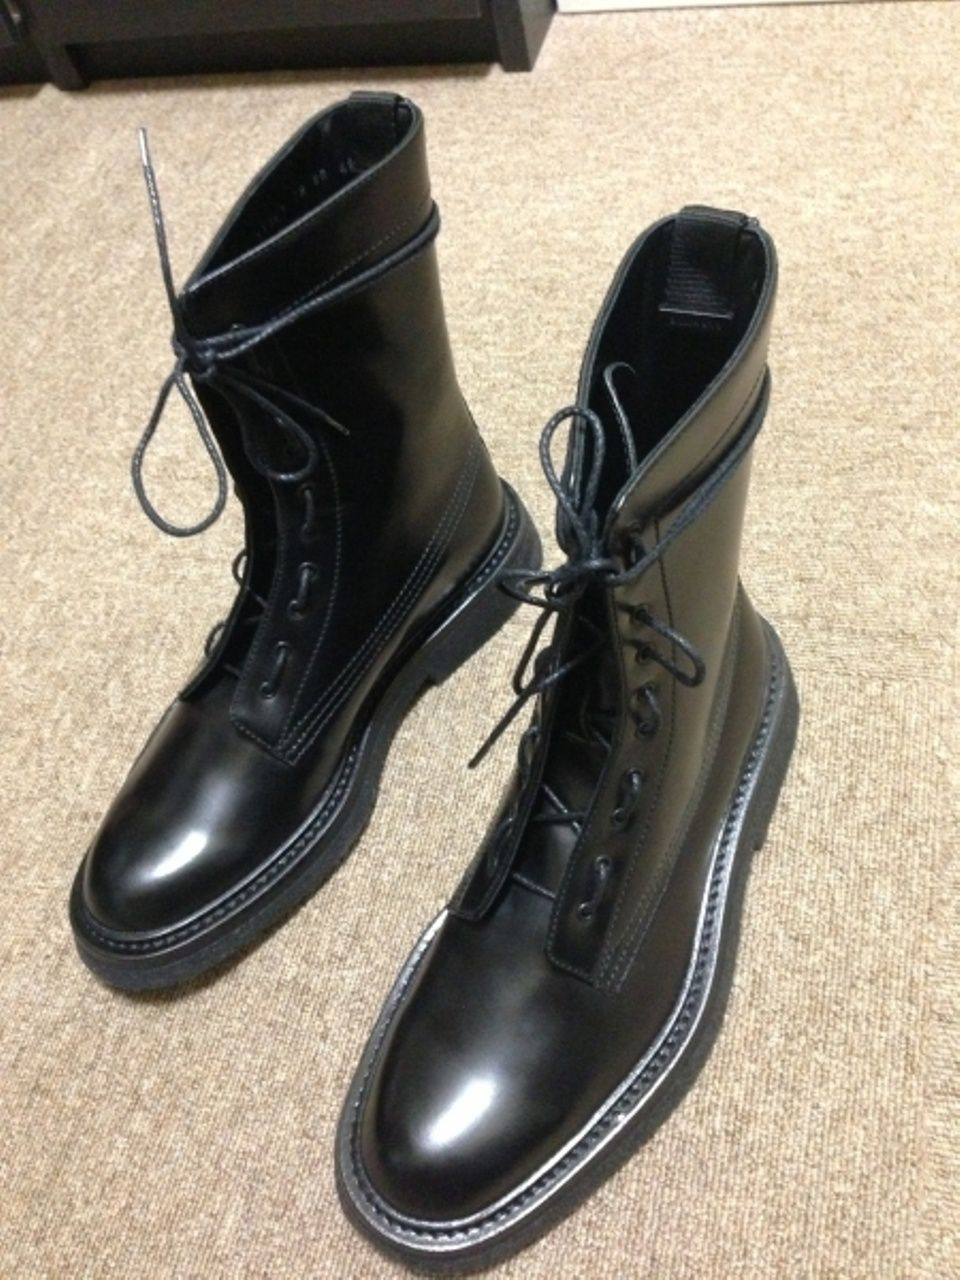 Dior Dior Homme Combat Boots 07 Size 9  1025 - Grailed ed7892292a1